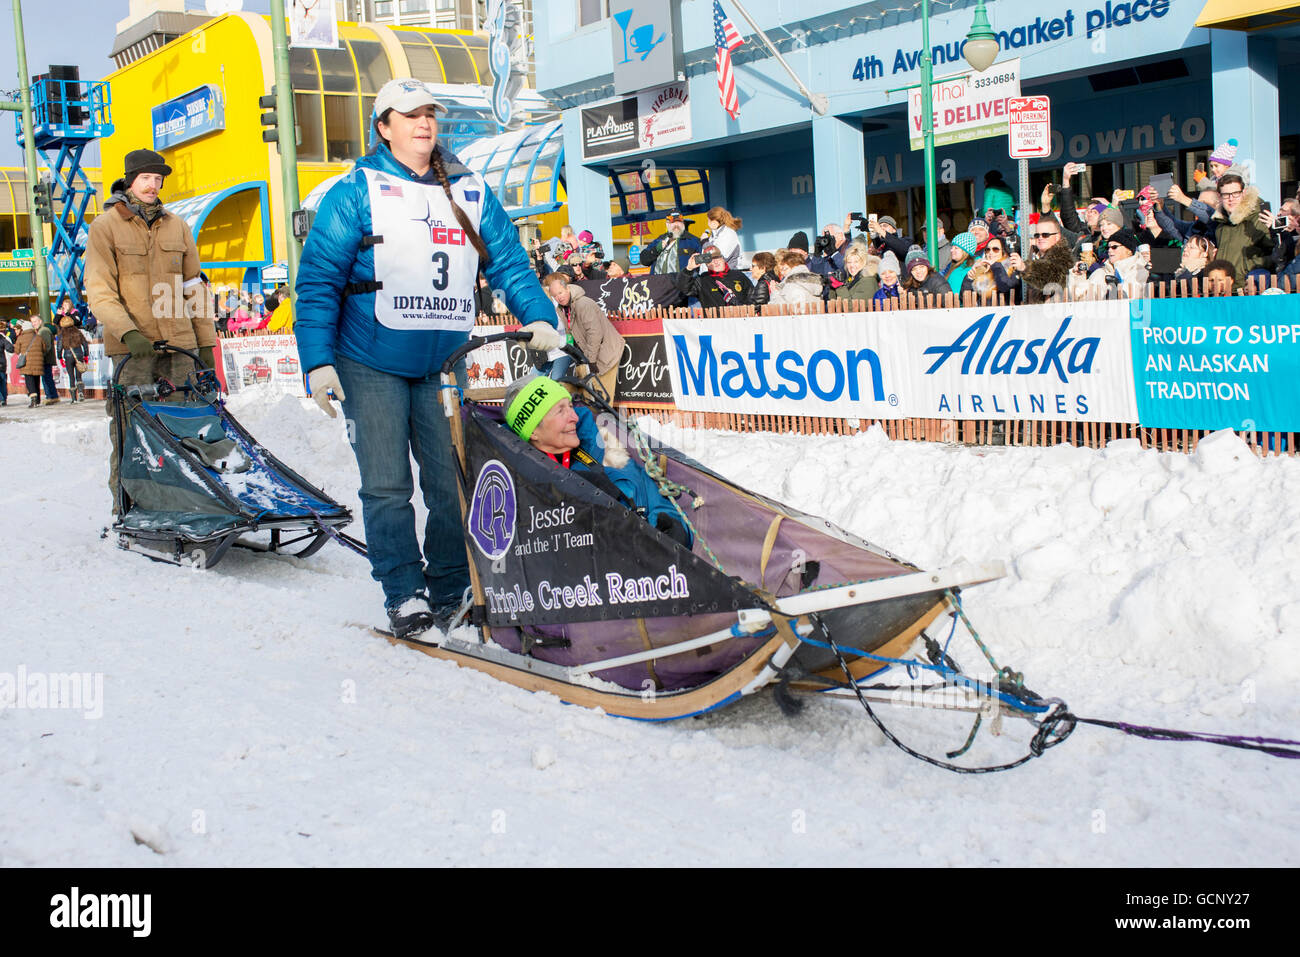 Jessie Royer and team leave the ceremonial start line with an Iditarider during the 2016 Iditarod - Stock Image